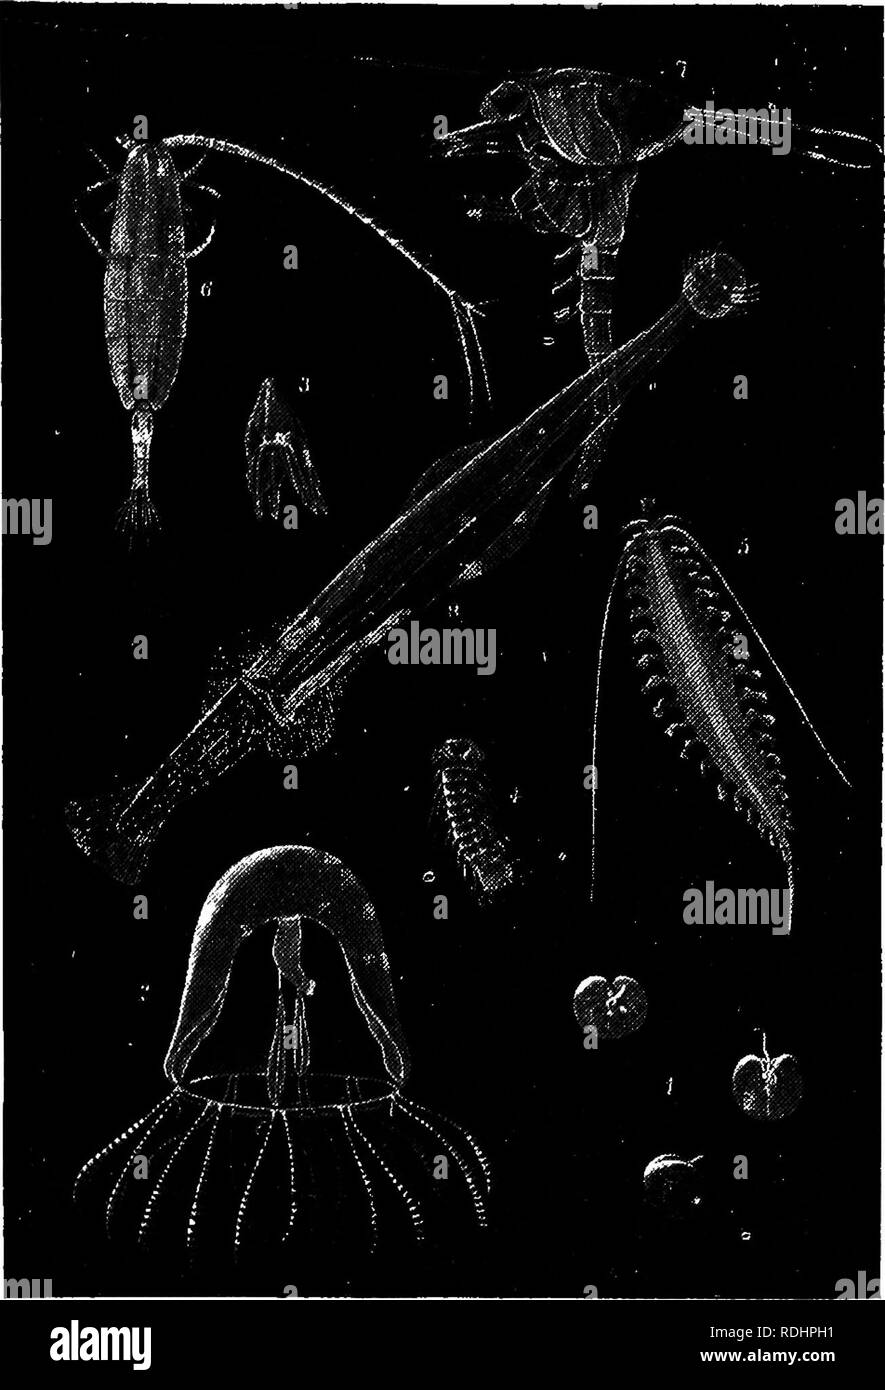 . A manual of elementary zoology . Zoology. Plate XIV.—Members of the pelagic fauna, considerably magnified. The animals shown here belong to the plankton or drifting fauna, so called because its powers of swimming are insignificant compared with the strength of the currents of the sea. They derive their food from minute floating plants, and in turn serve to feed larger pelagic animals, such as the great jelly-fish, herrings, and whales. i, Noctiluca.) a large, phosphorescent flagellate ; 2, medusa of a hydroid ; 5, a worm related to Nereis; 6, a crustacean related to Cyclops; 8, the Arrow wor Stock Photo